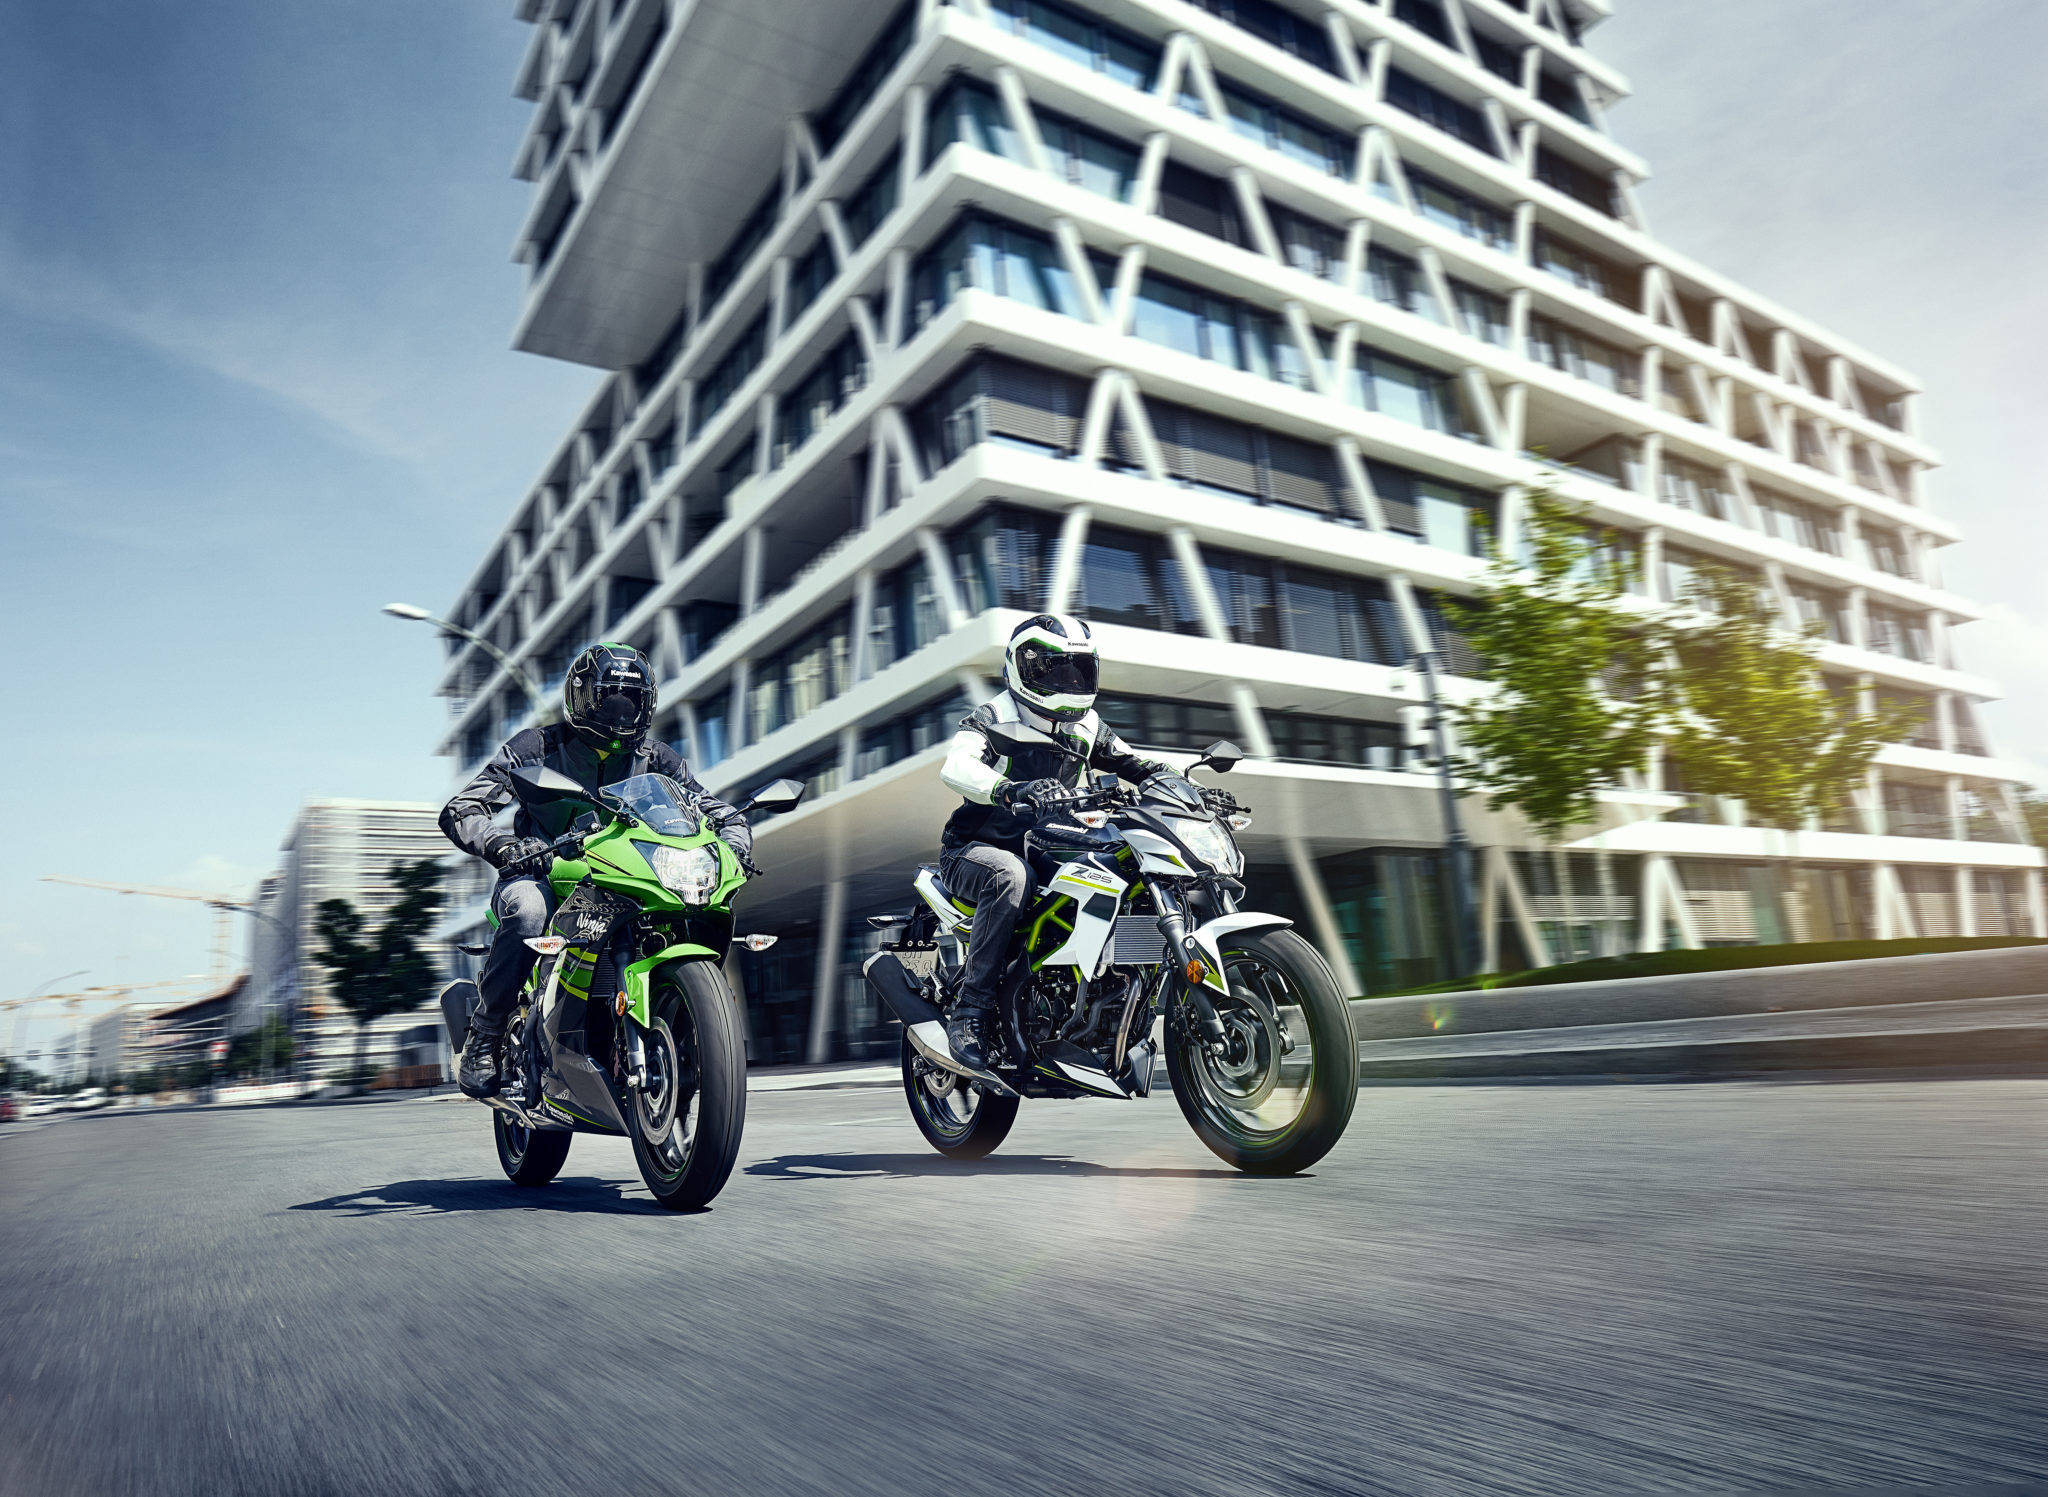 New Kawasaki Ninja and Z125 break cover at INTERMOT